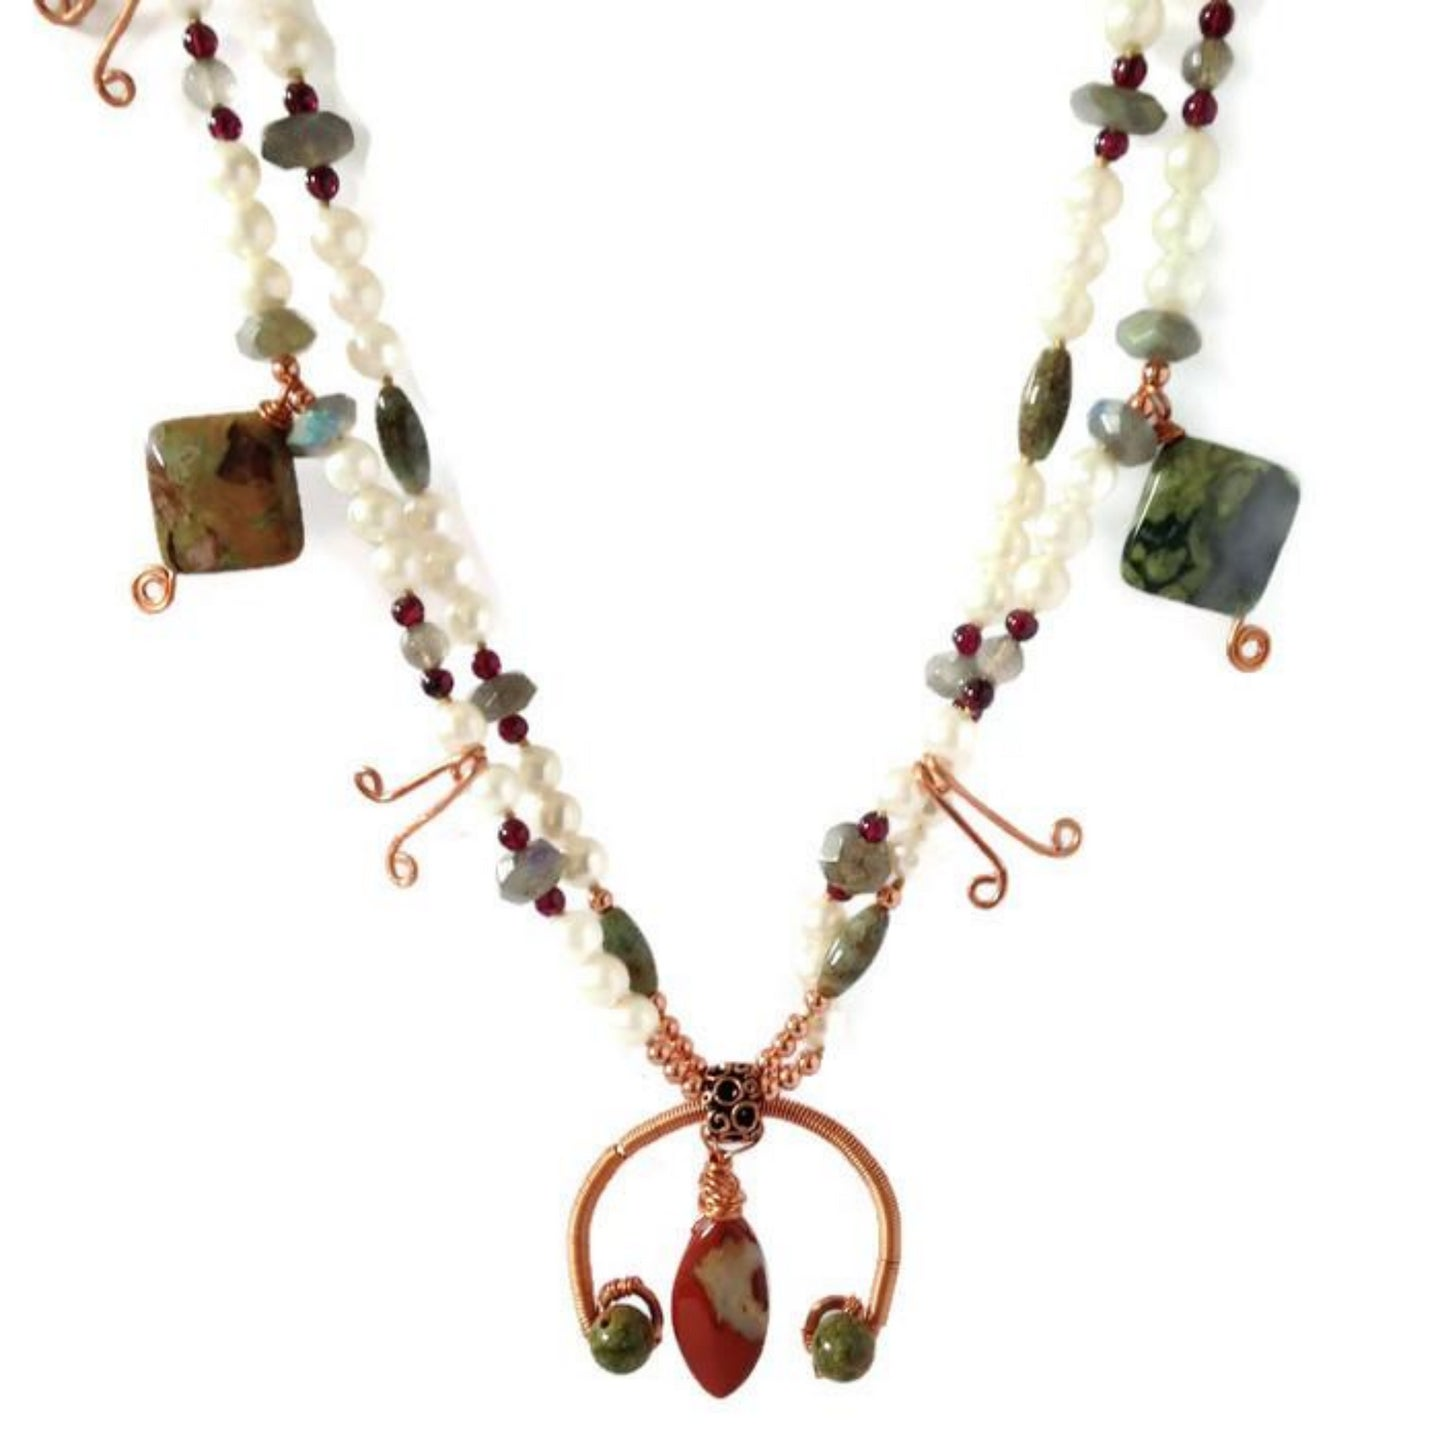 Contemporary Copper Squash Blossom Necklace by Buckaroo Bling